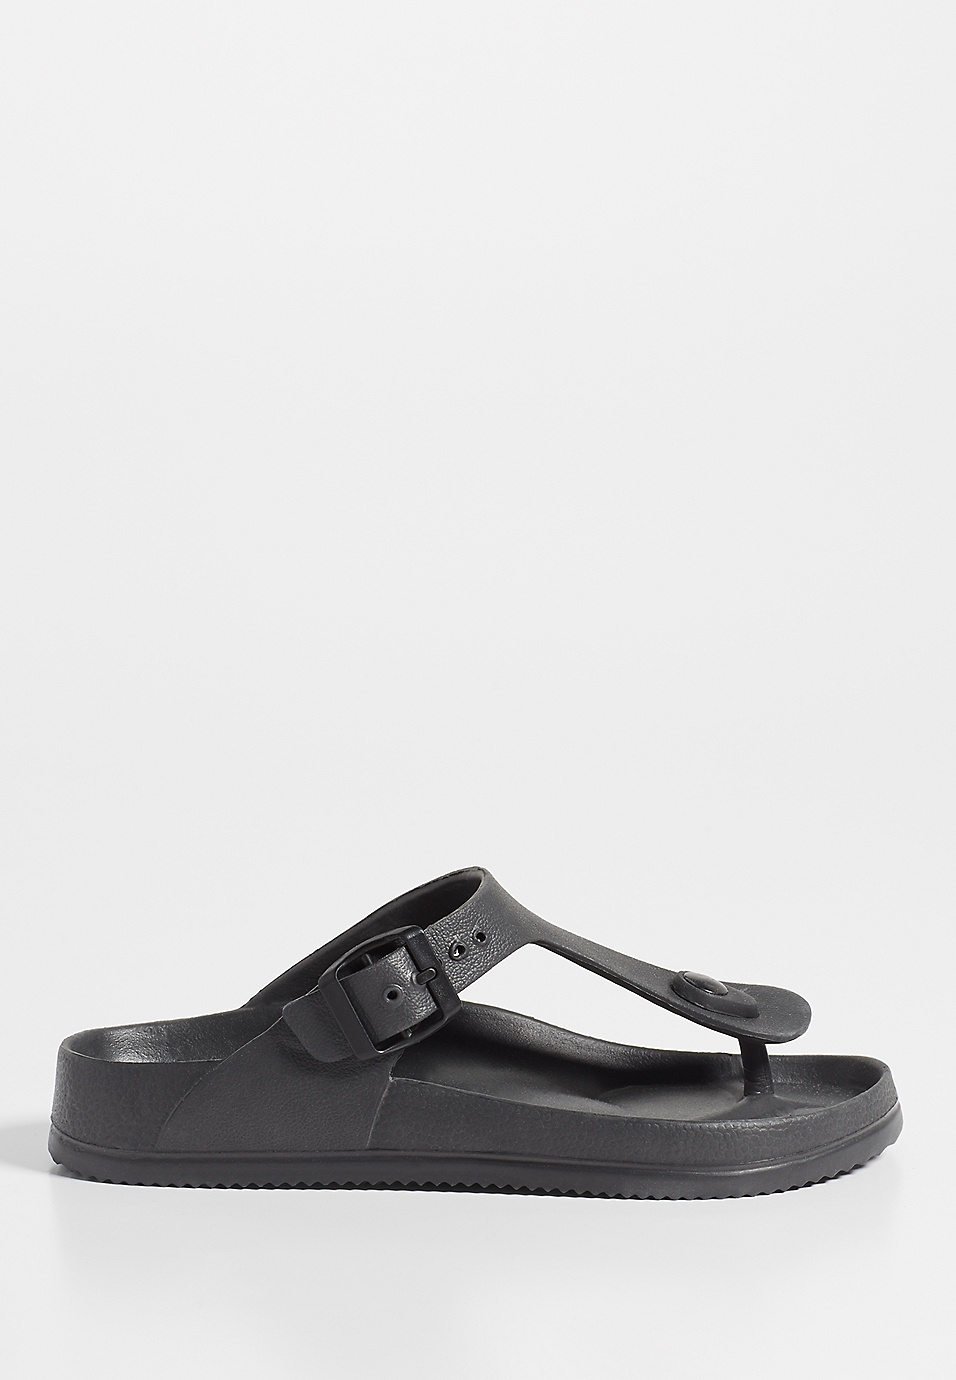 a174000d0bbdd Sharon molded thong footbed sandal